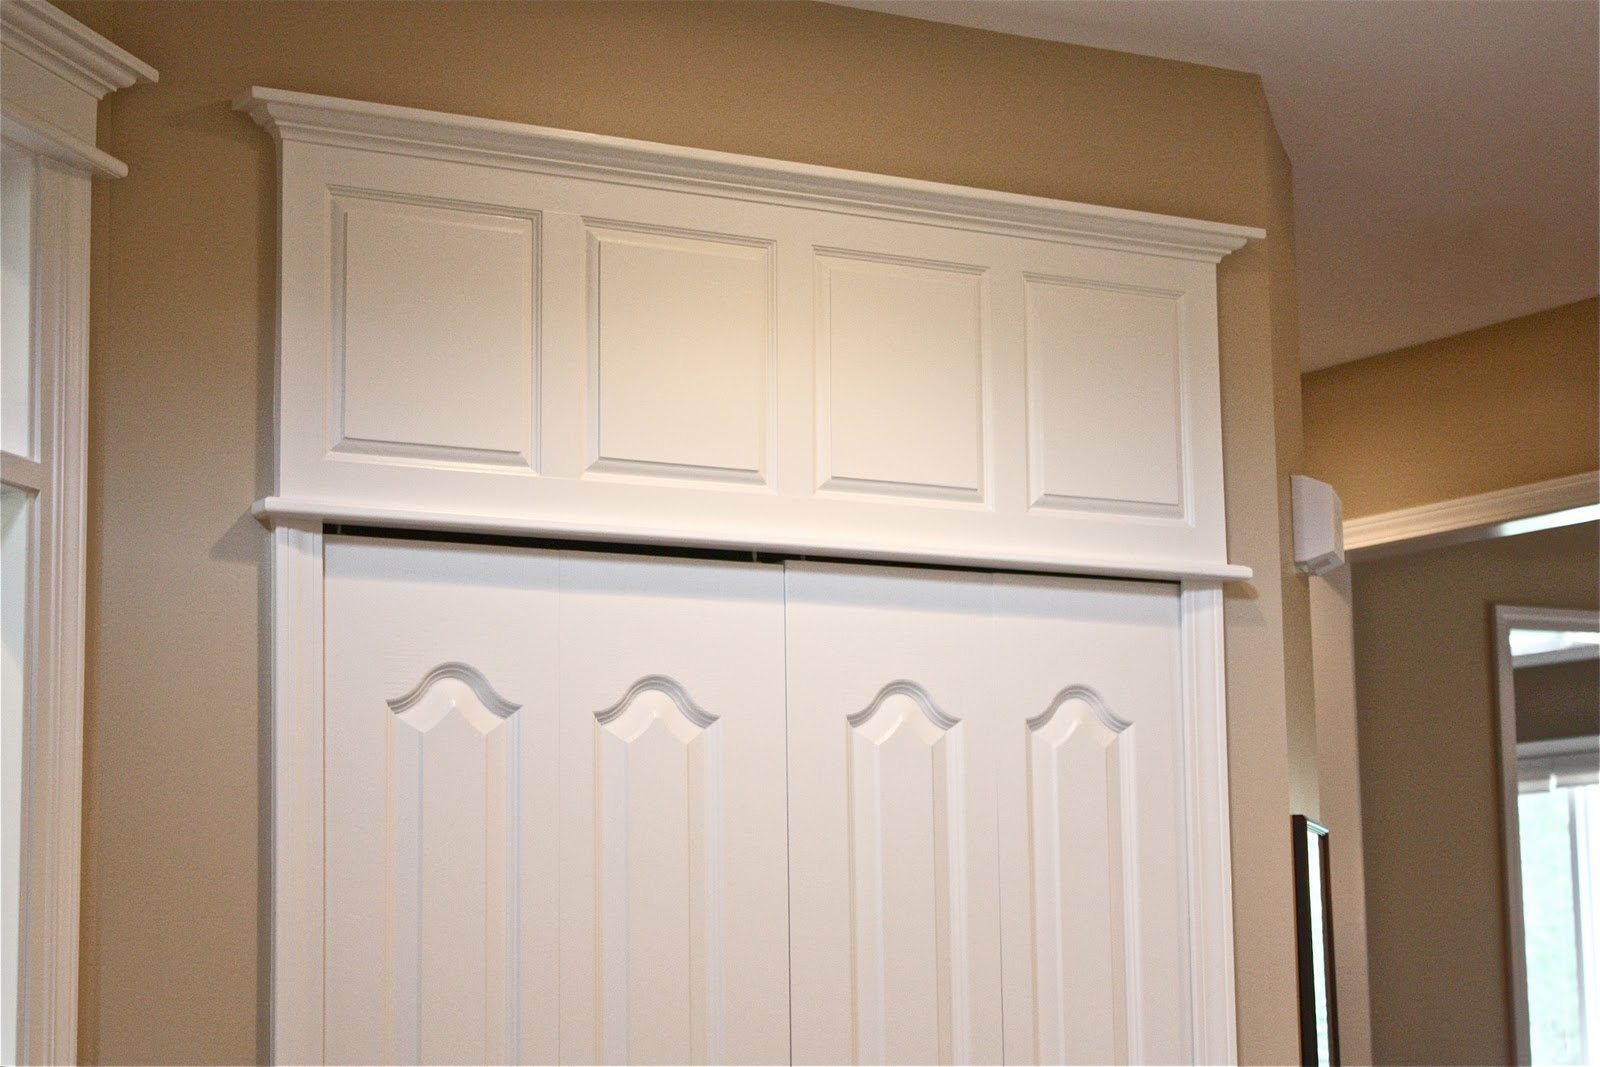 How To Make Doors Appear Taller & The Yellow Cape Cod: How To Make Doors Appear Taller